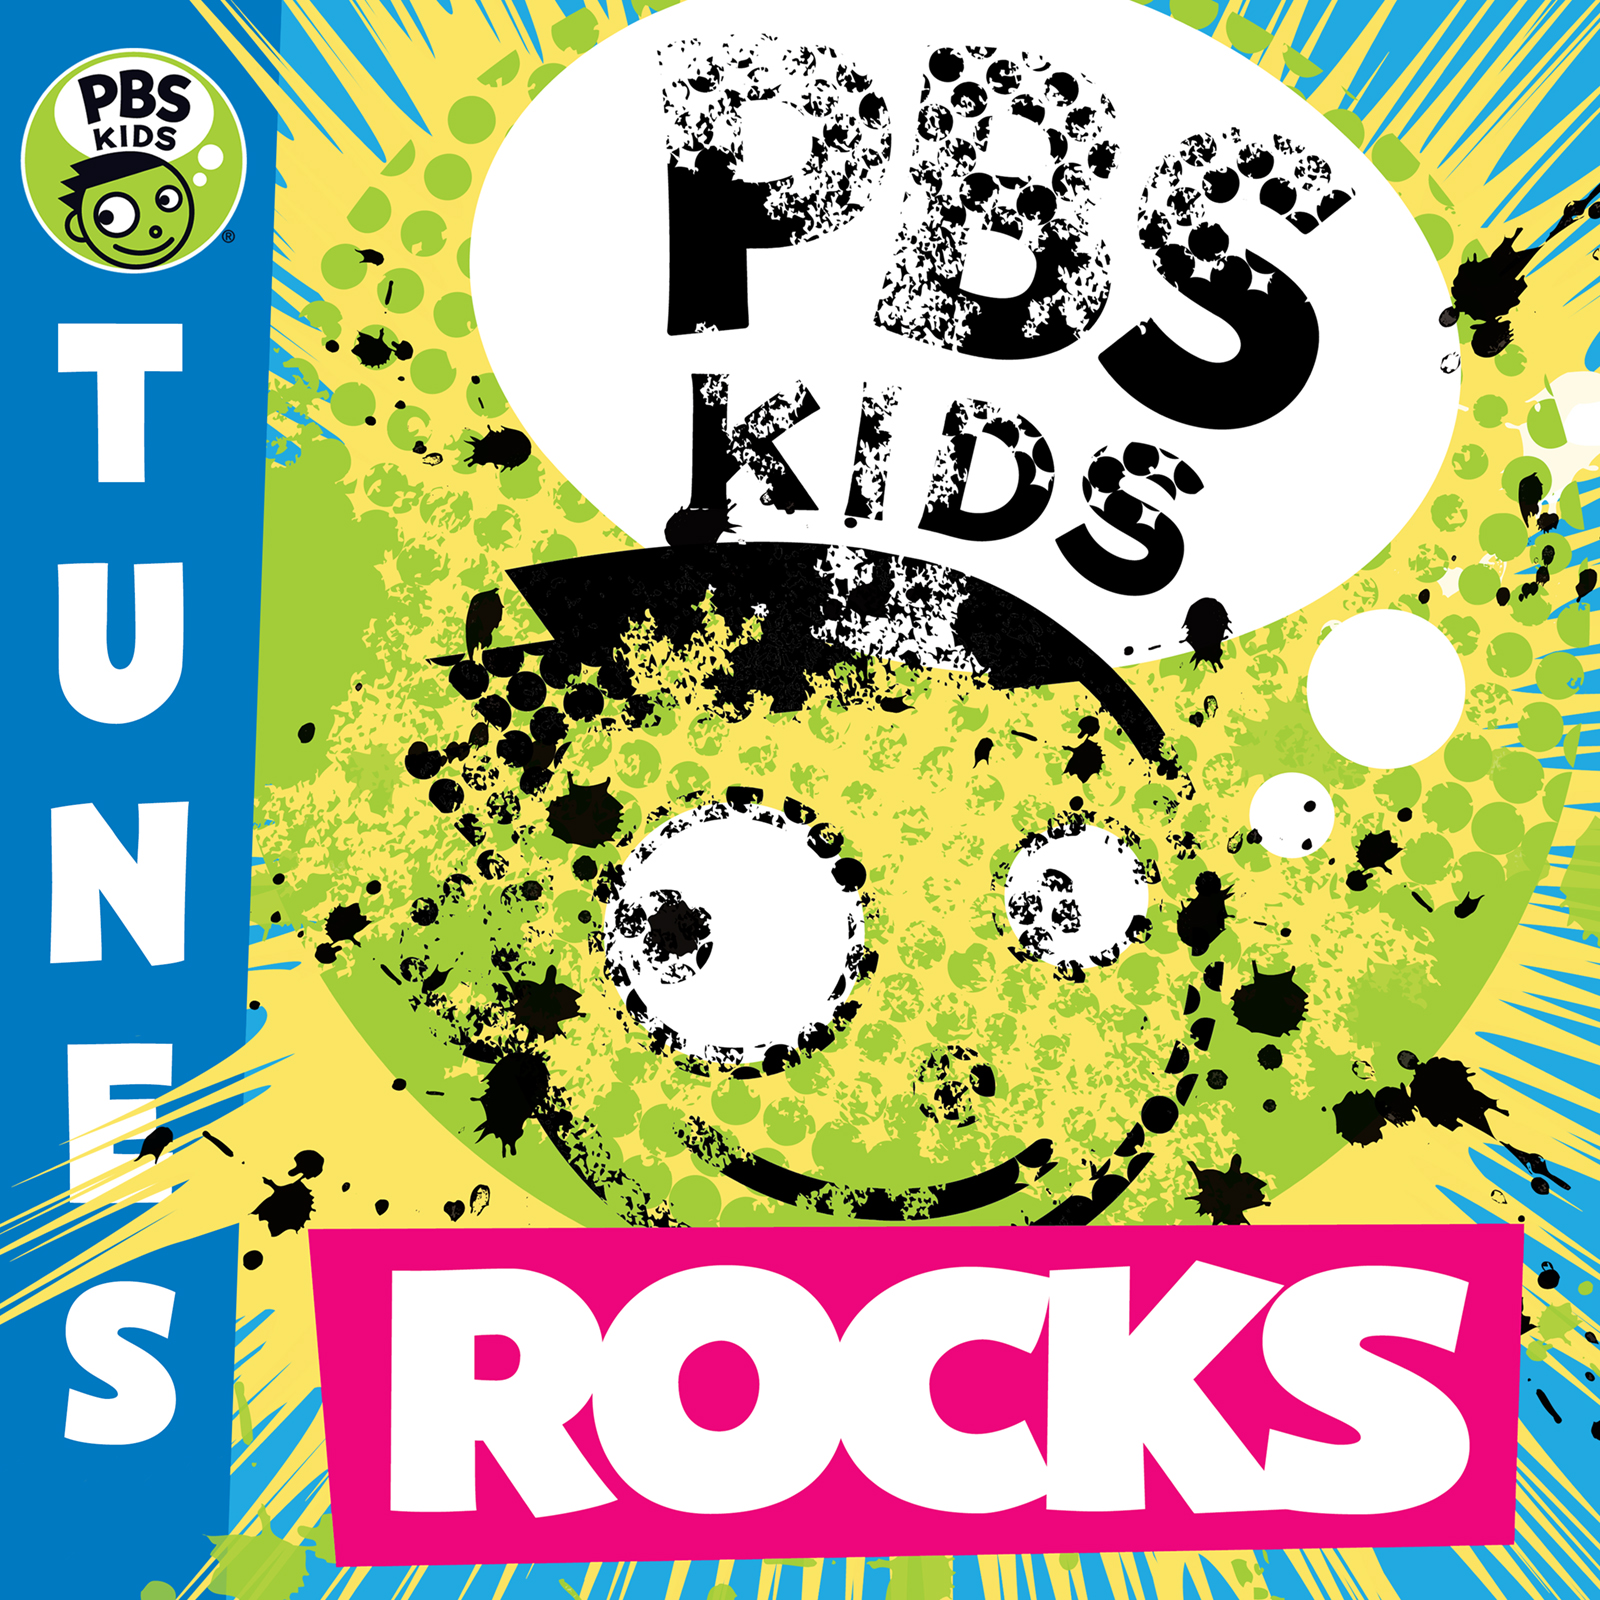 PBS KIDS Rocks icon.